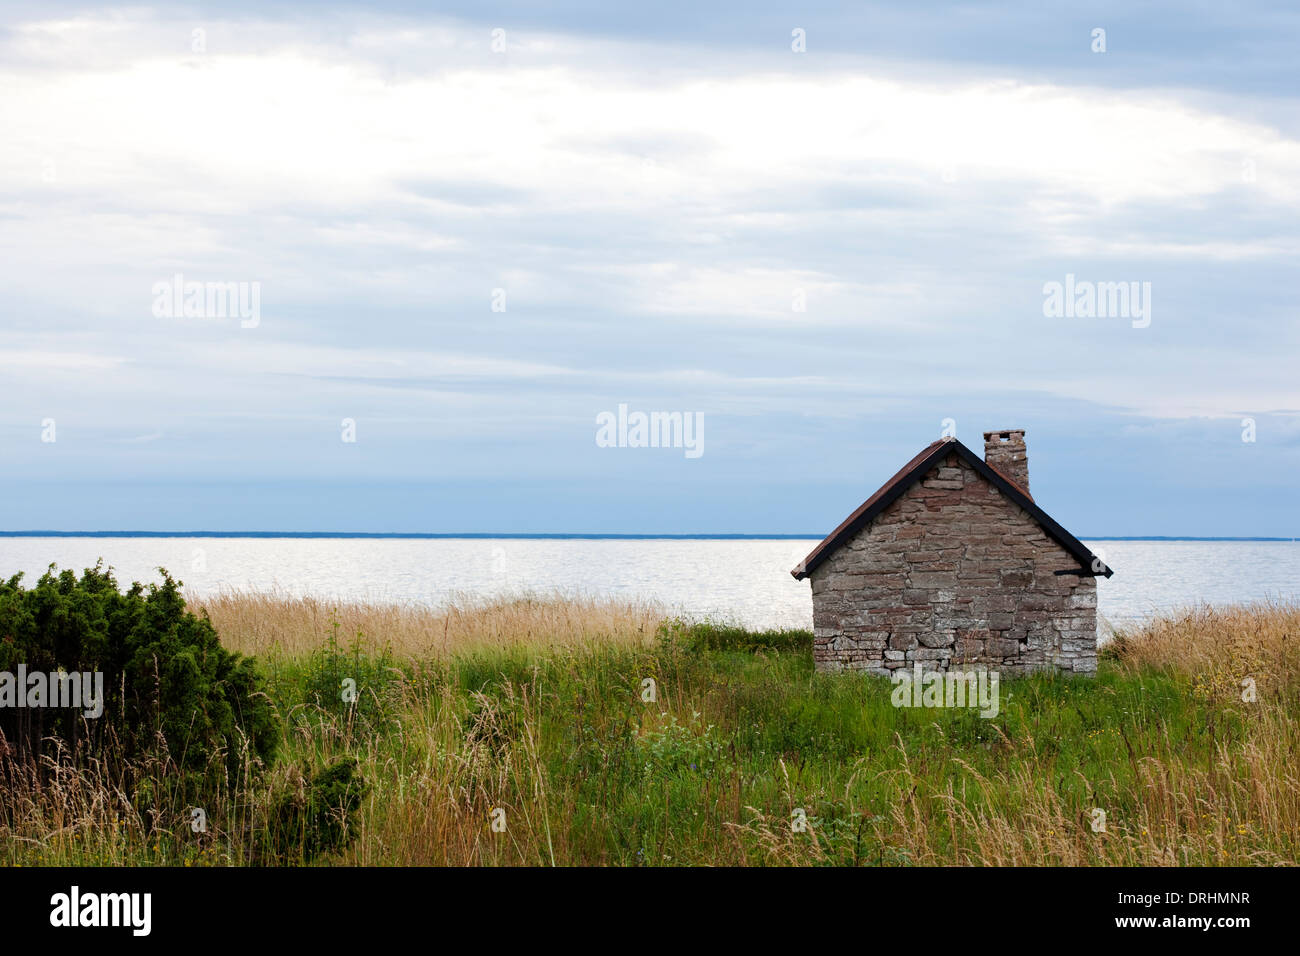 Field with blurred house and shoreline in background.Djupvik,Öland.Sweden - Stock Image